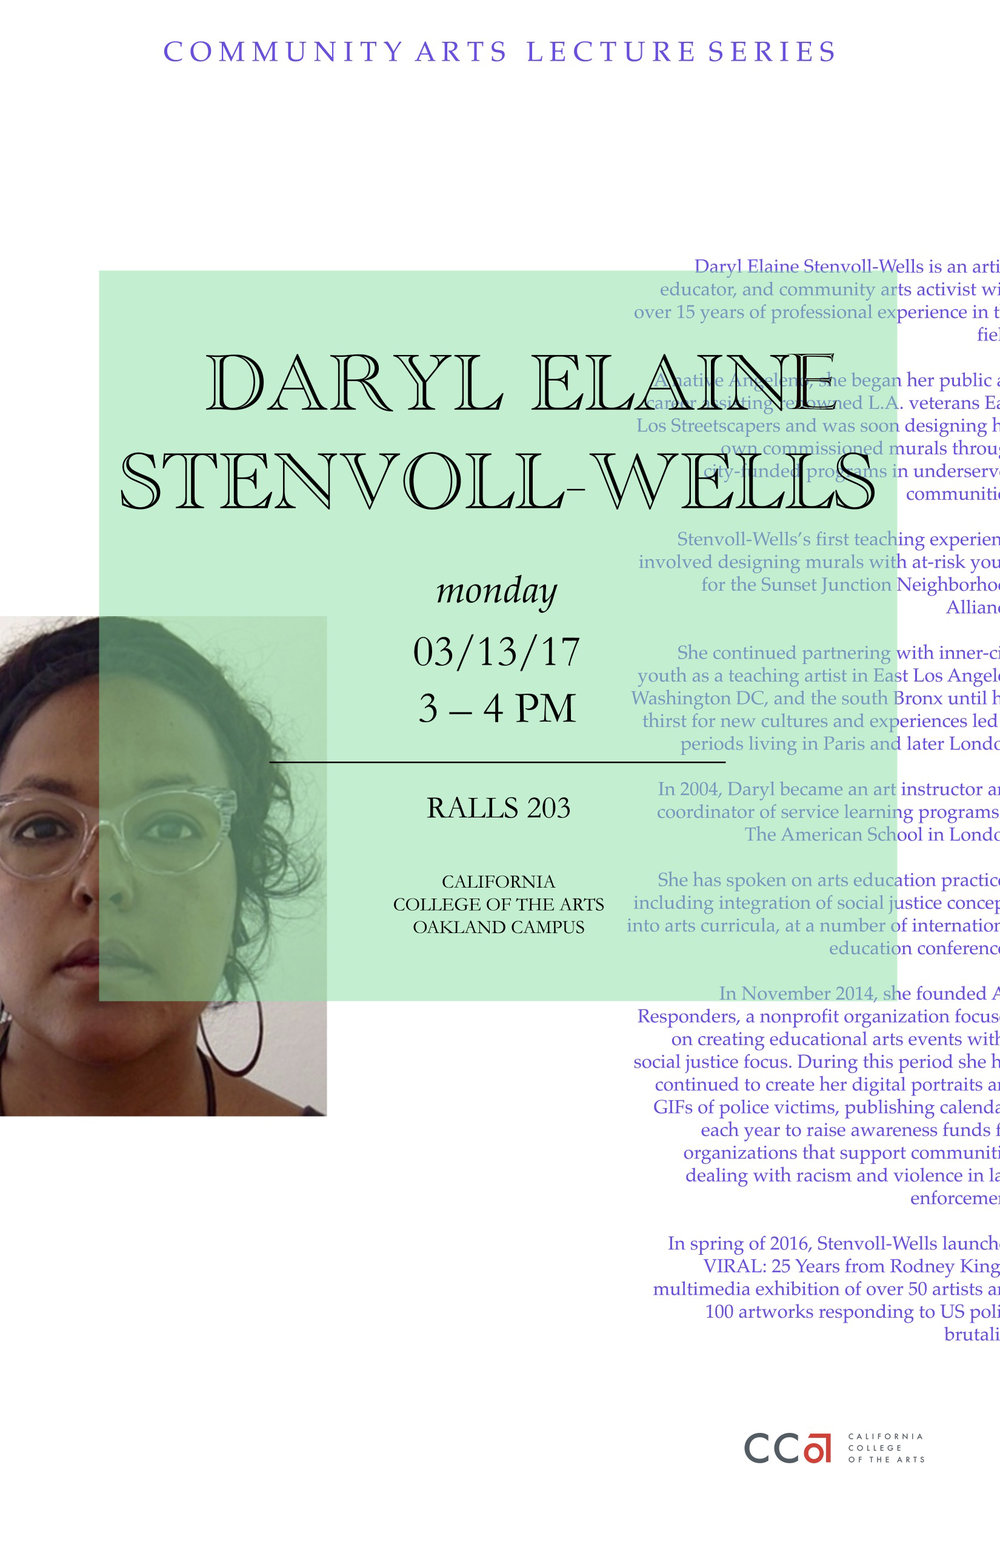 - Stenvoll-Wells visited California College of the Arts to offer visual cultures students her perspective as a social practice artist, educator and and independent curator.